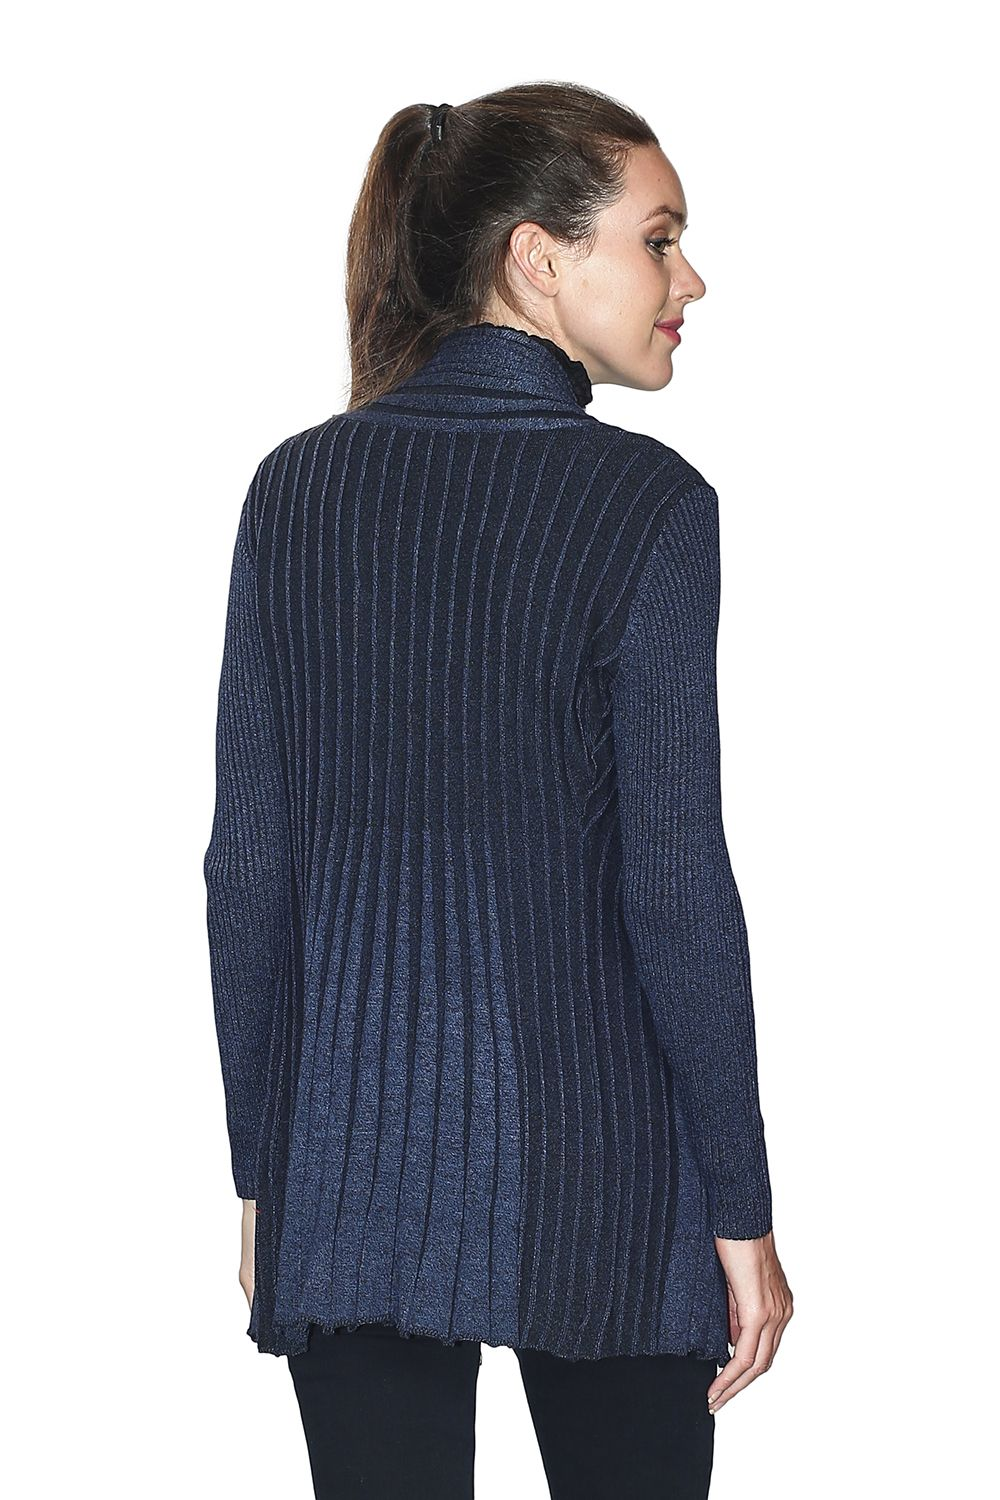 Assuili Long Sleeve Textured Mesh Open Cardigan (Large Fit) in Navy